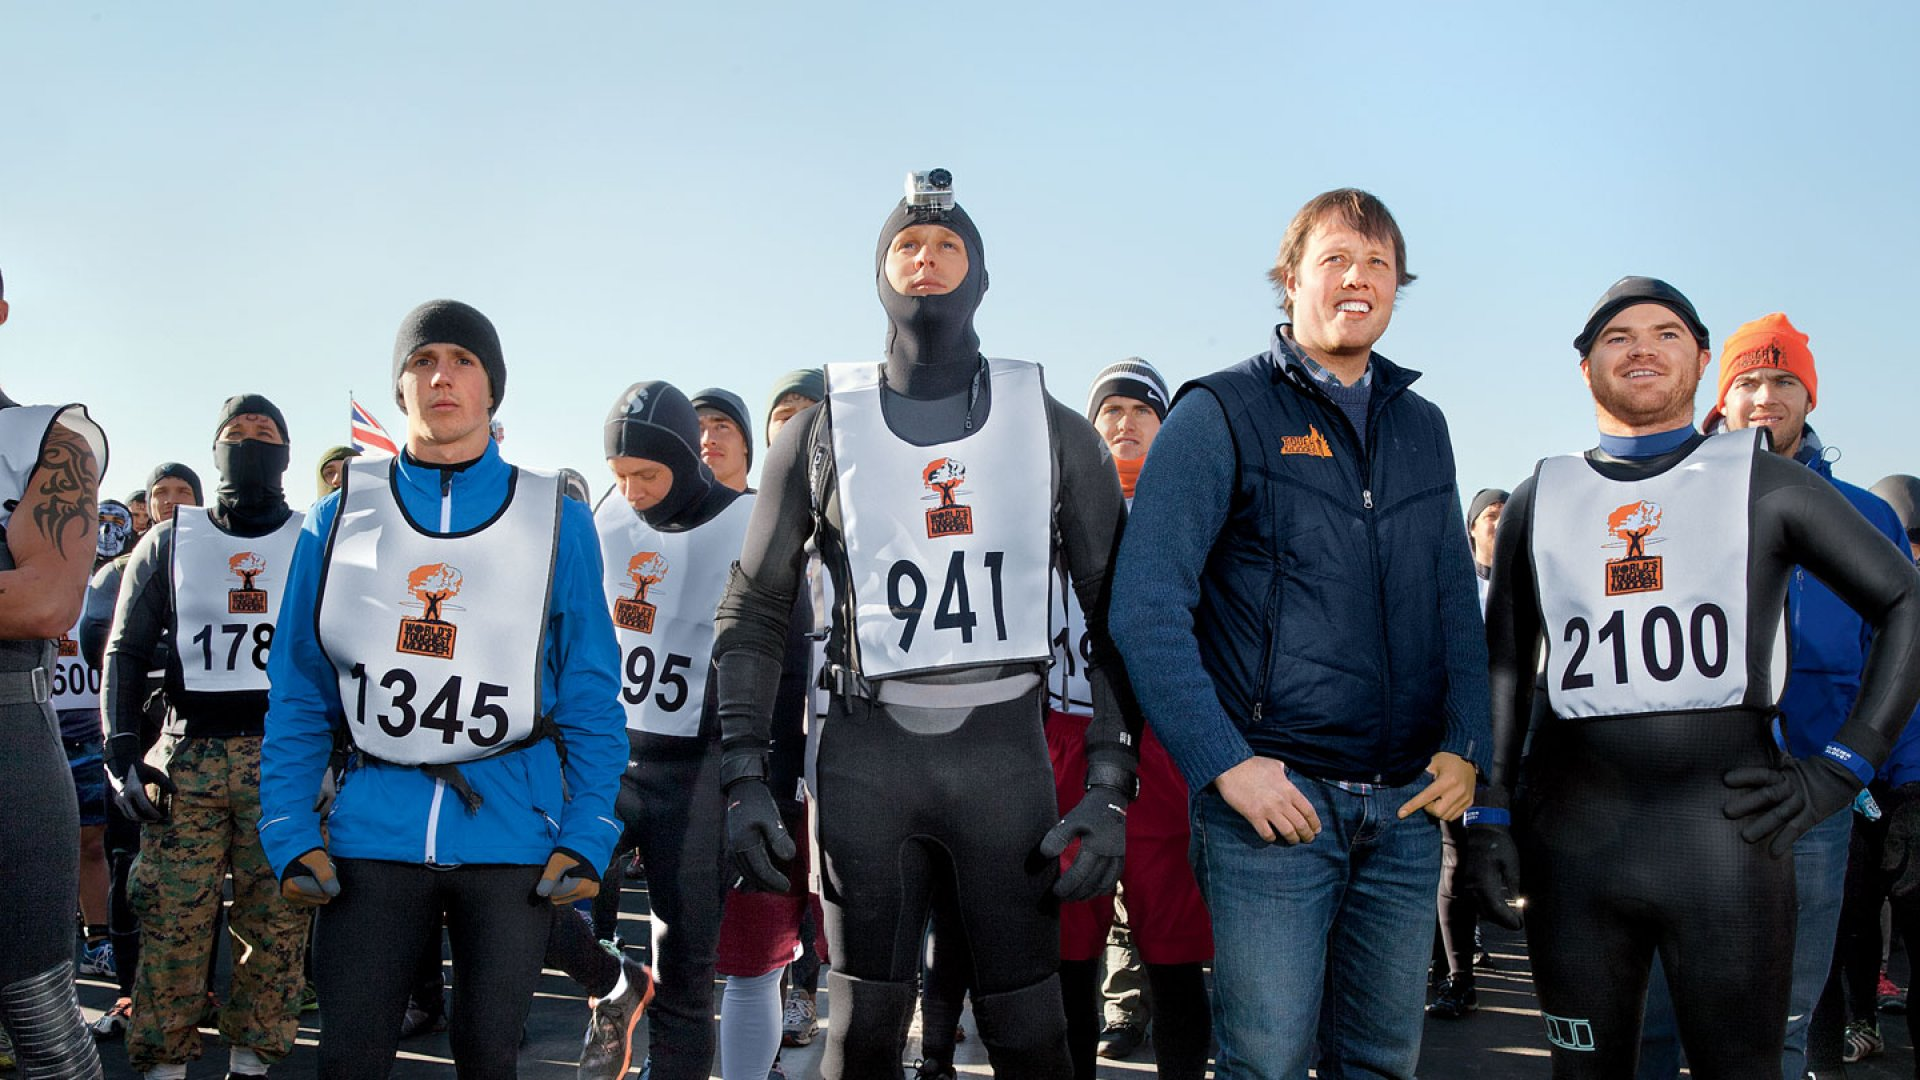 <b>Ready for Punishment:</b> About 1,000 racers joined co-founders Will Dean (second from right) and Guy Livingstone (right) in Englishtown, New Jersey, for World's Toughest Mudder, a 24-hour race that is the company's most grueling challenge.